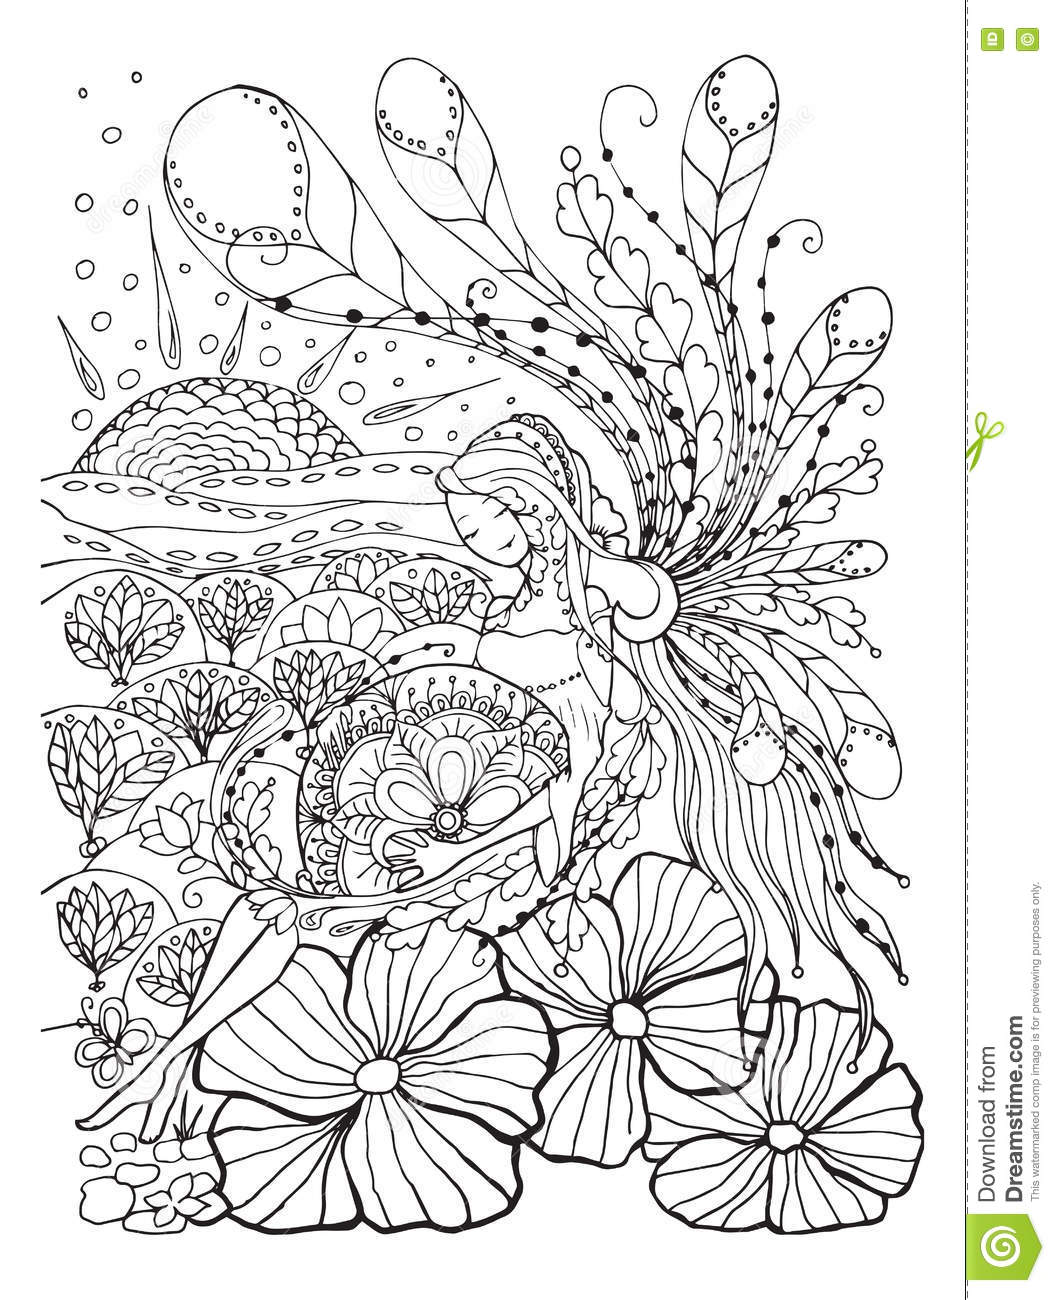 Adult Coloring Book Page With Pregnant Lady Pregnancy In